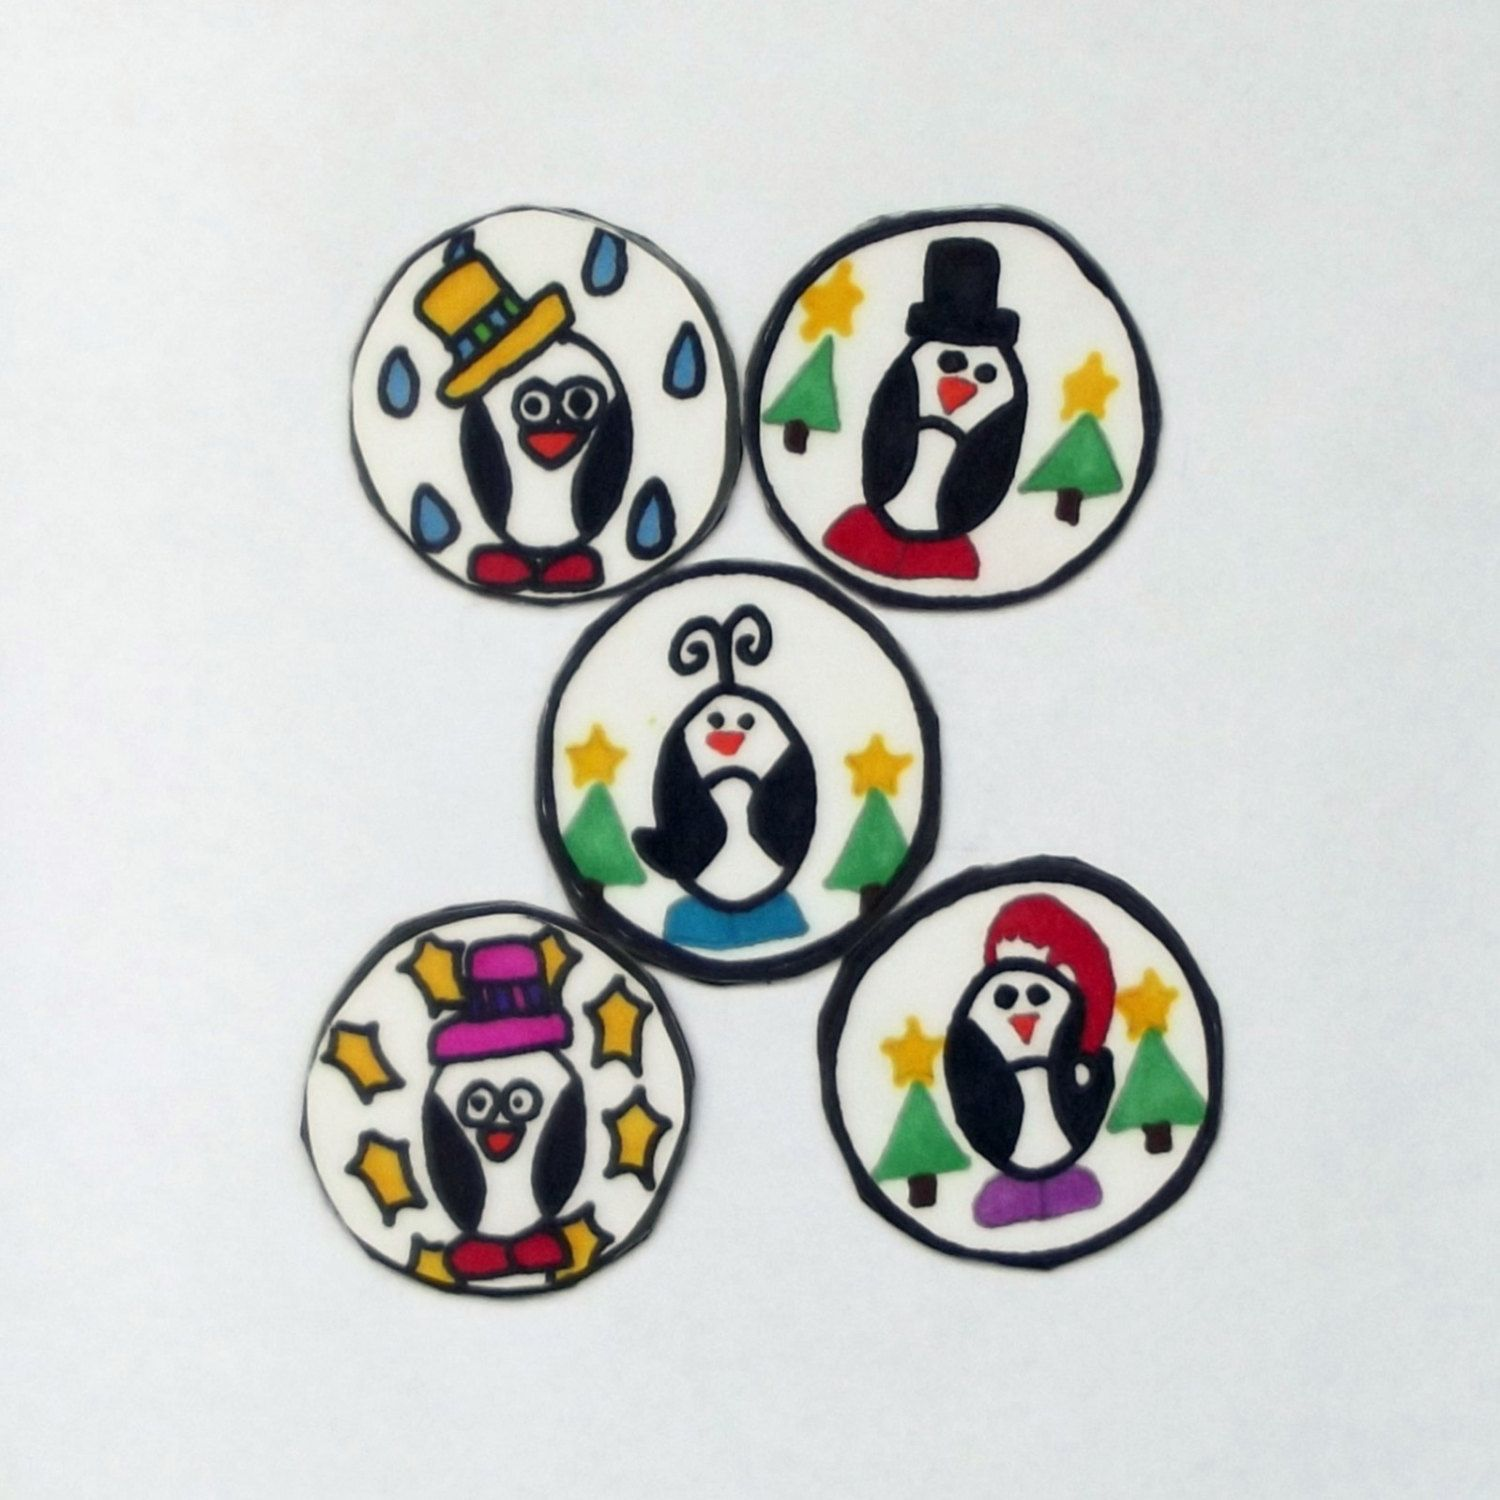 Set of 5 Penguin Magnets, Refrigerator Magnets, Penguin Magnets, Penguin Kitchen Decor, Christmas Decor, Christmas Gifts, Stocking Stuffers by YouniqueGiftShop on Etsy